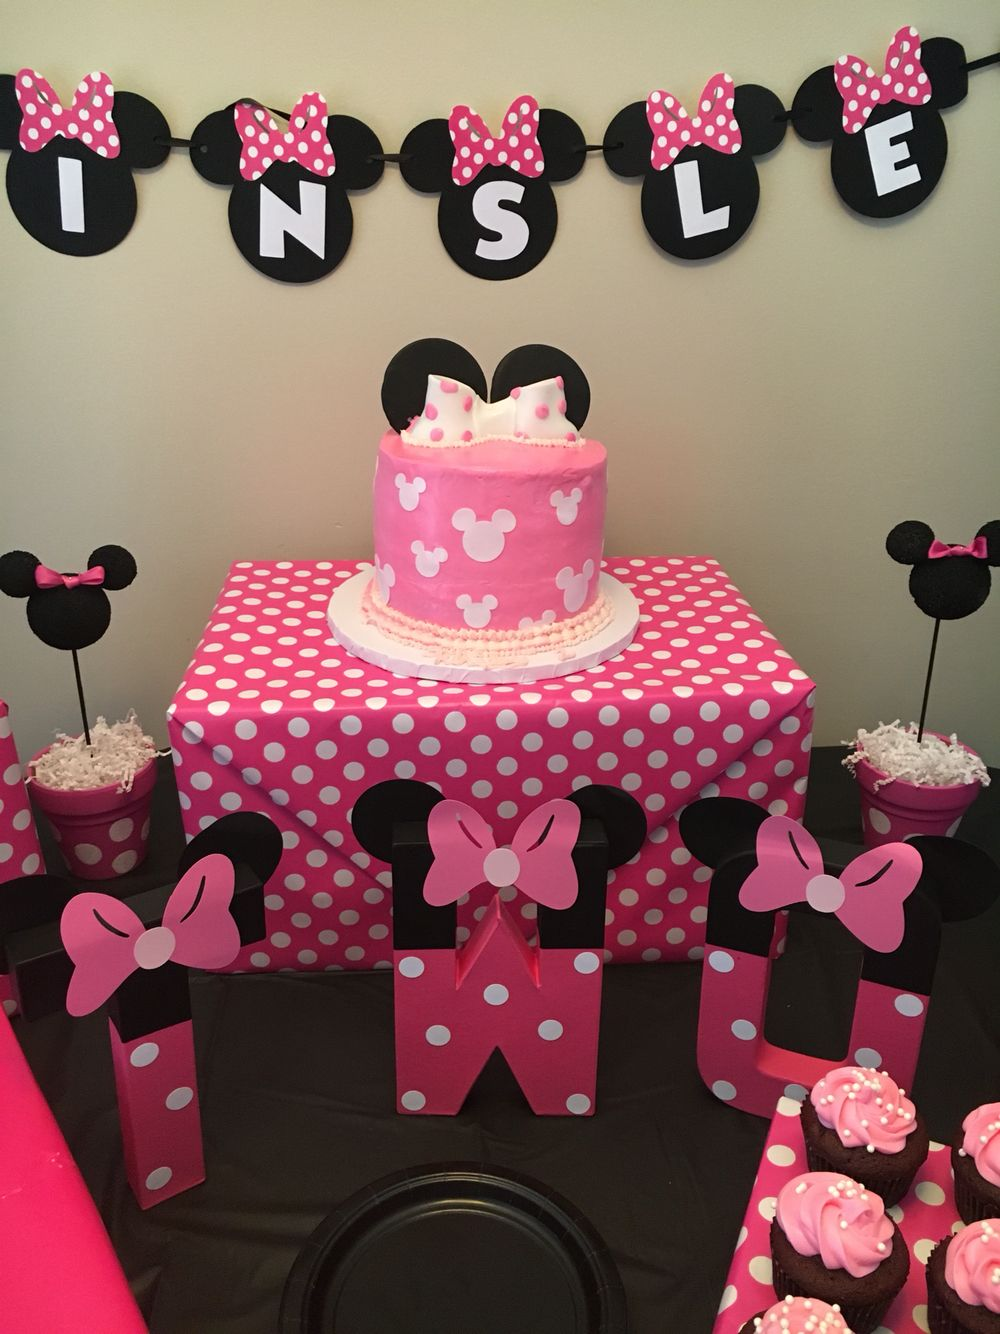 Pin On Kinsleys 2nd Birthday Party